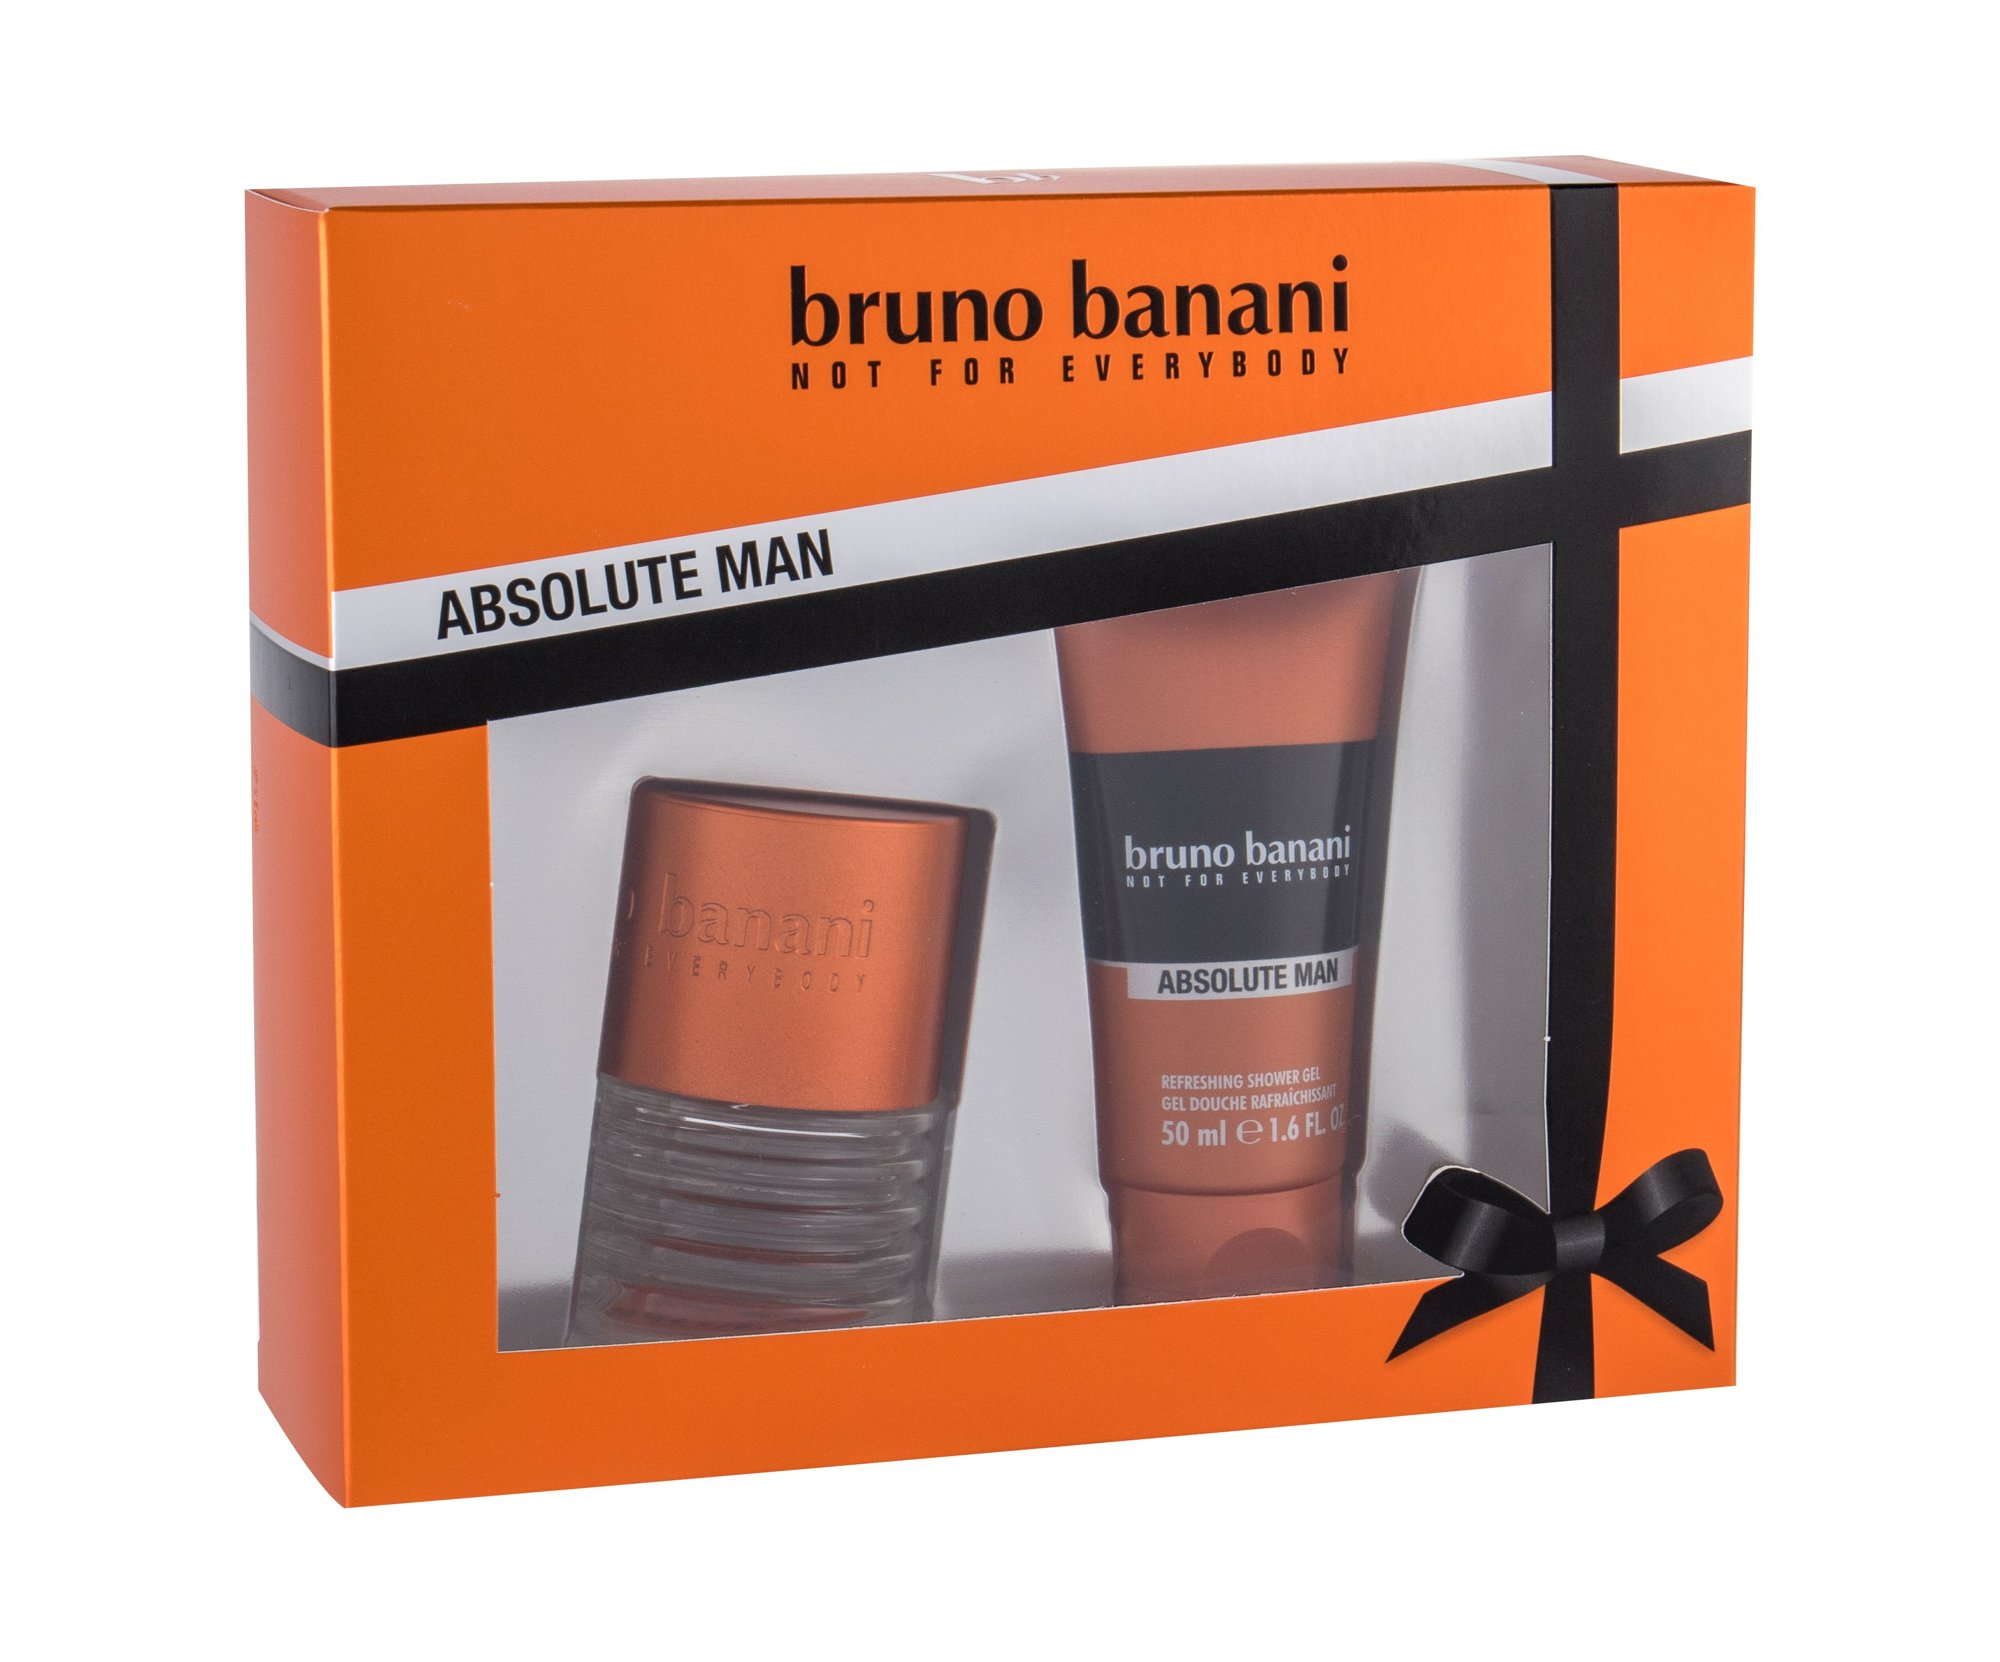 Bruno Banani Absolute Man Eau de Toilette 30ml